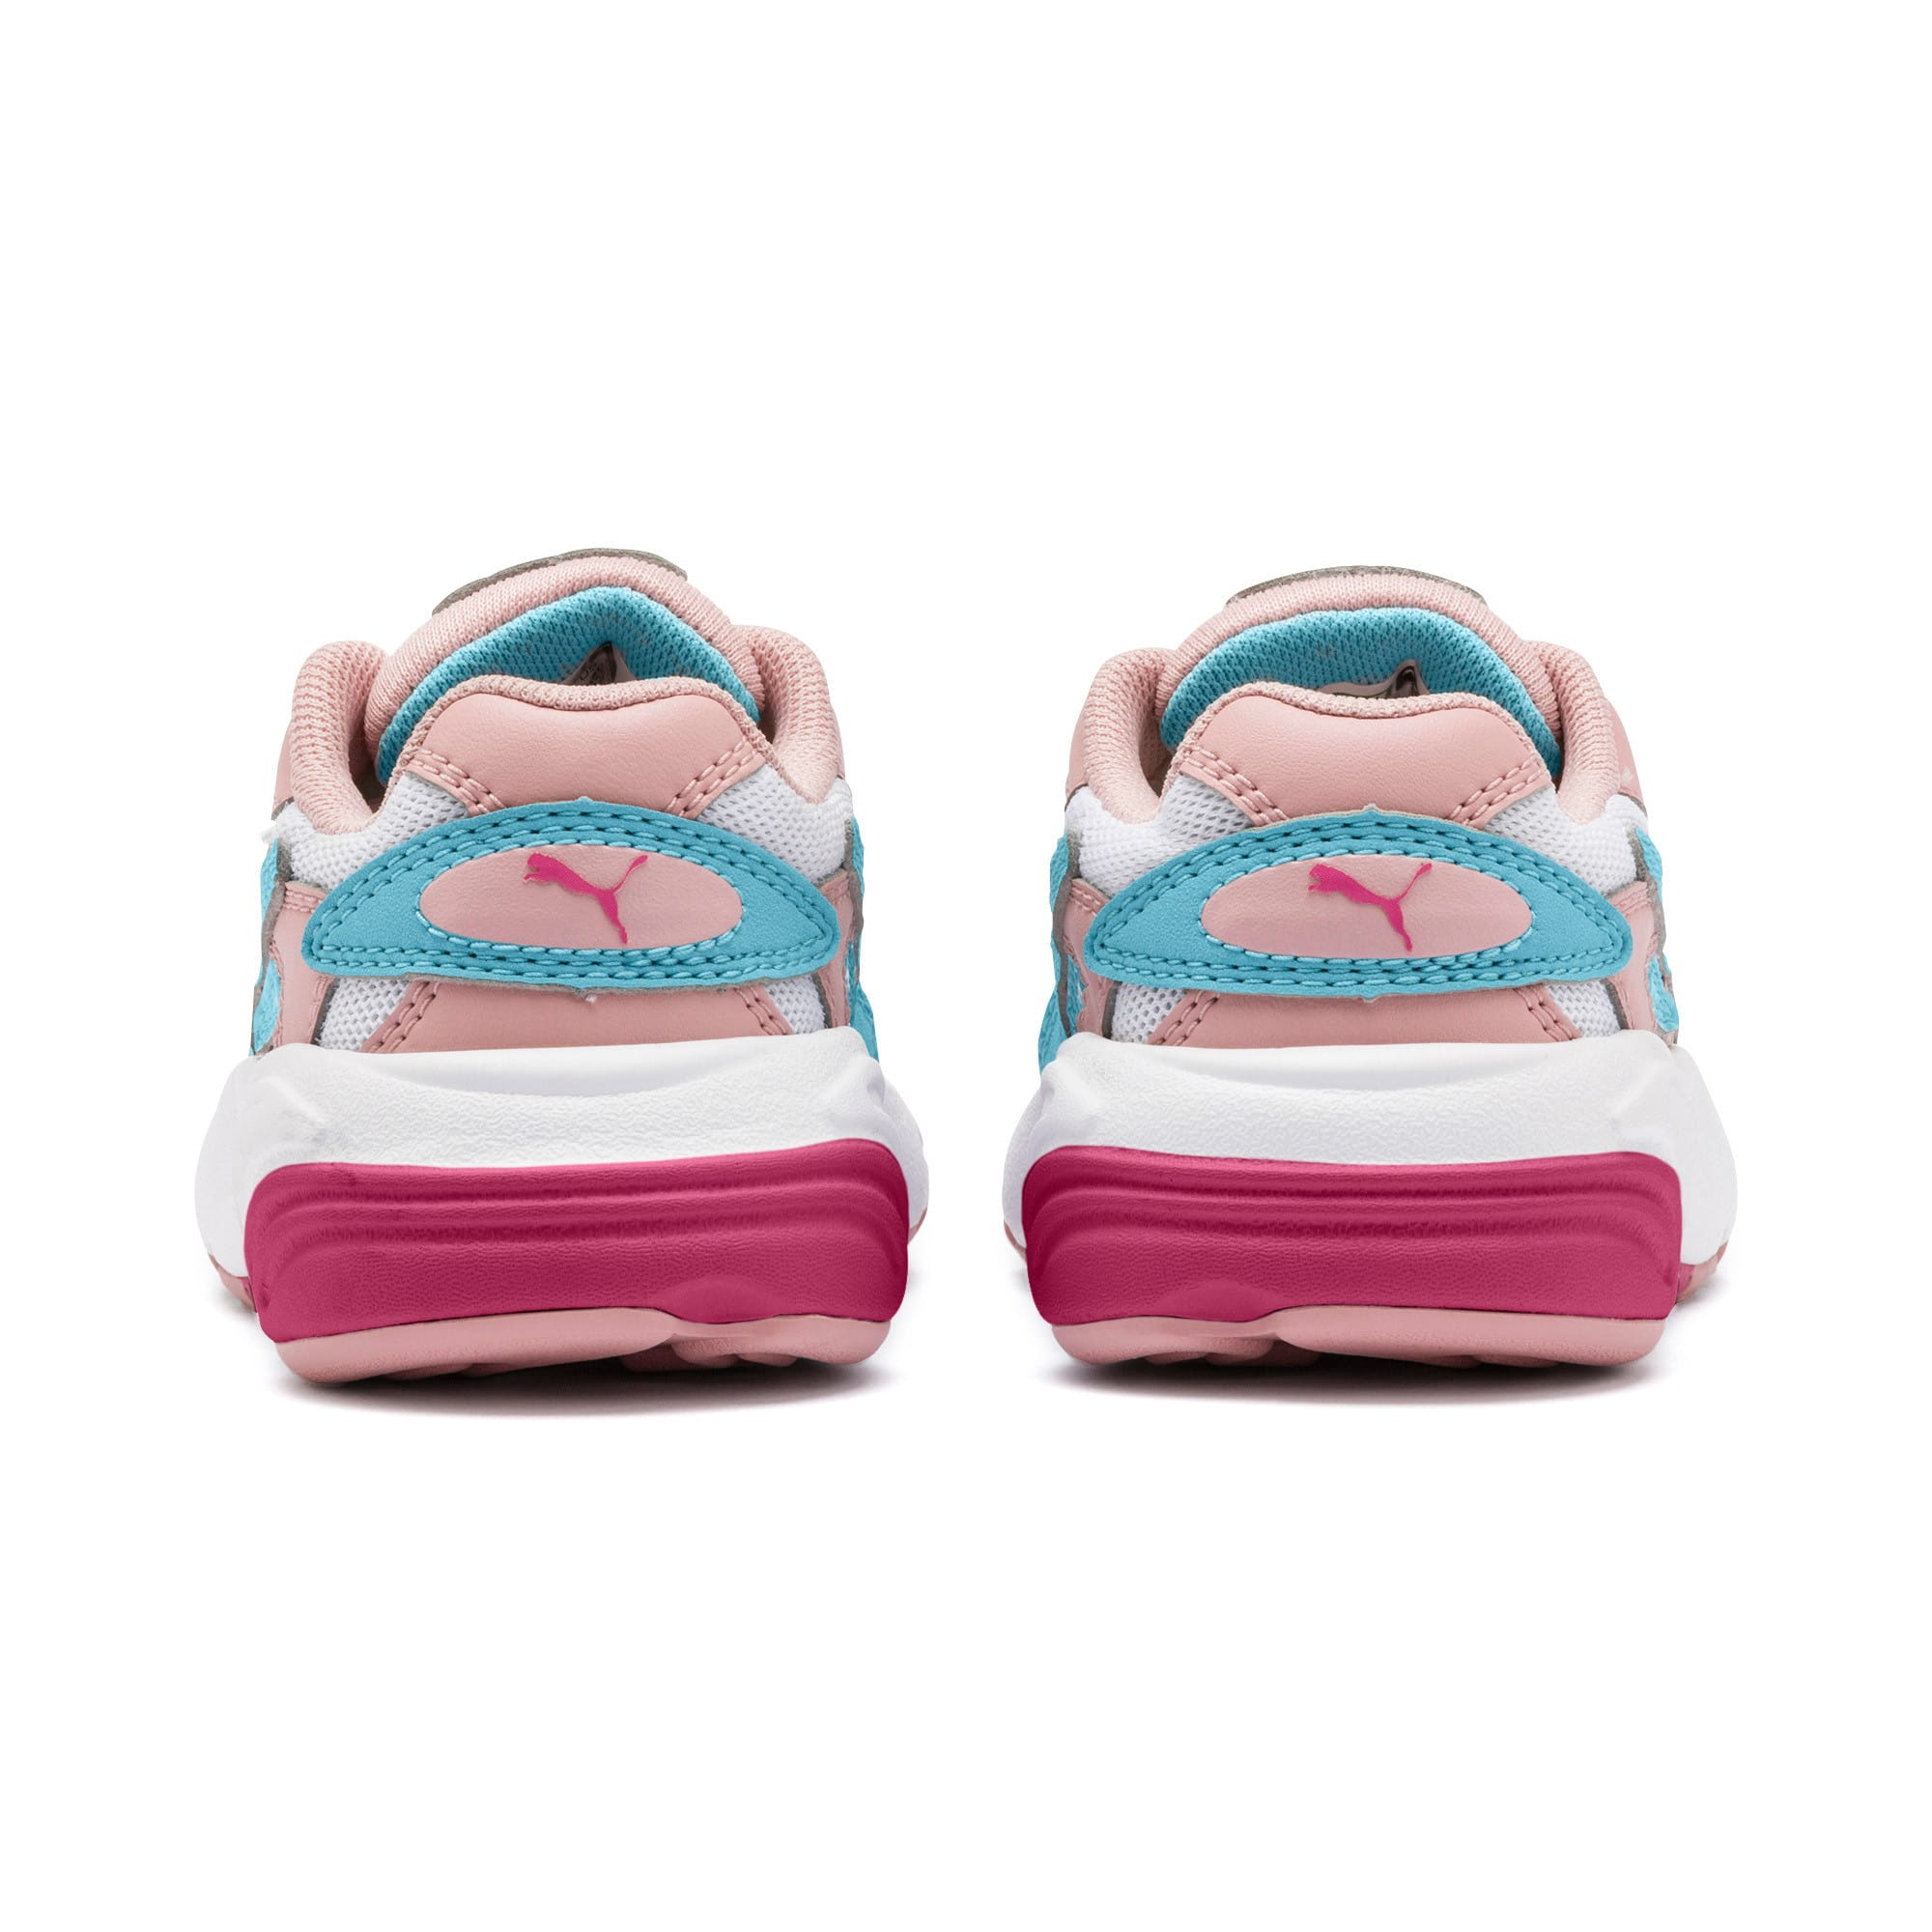 Thumbnail 3 of CELL Alien Cosmic Babies' Trainers, Bridal Rose-Milky Blue, medium